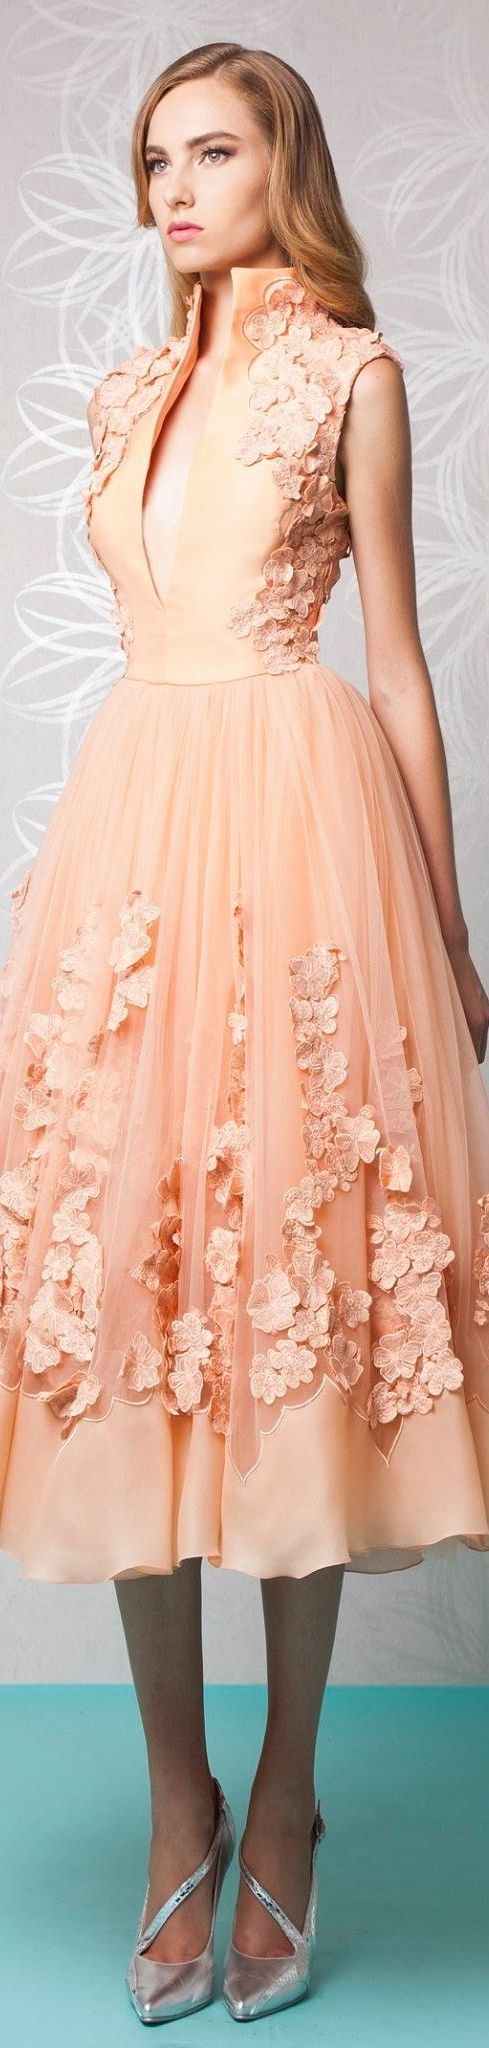 Wedding Peach Dresses 17 best ideas about peach dresses on pinterest pretty blush pink maxi dress and strappy bridesmaids dresses